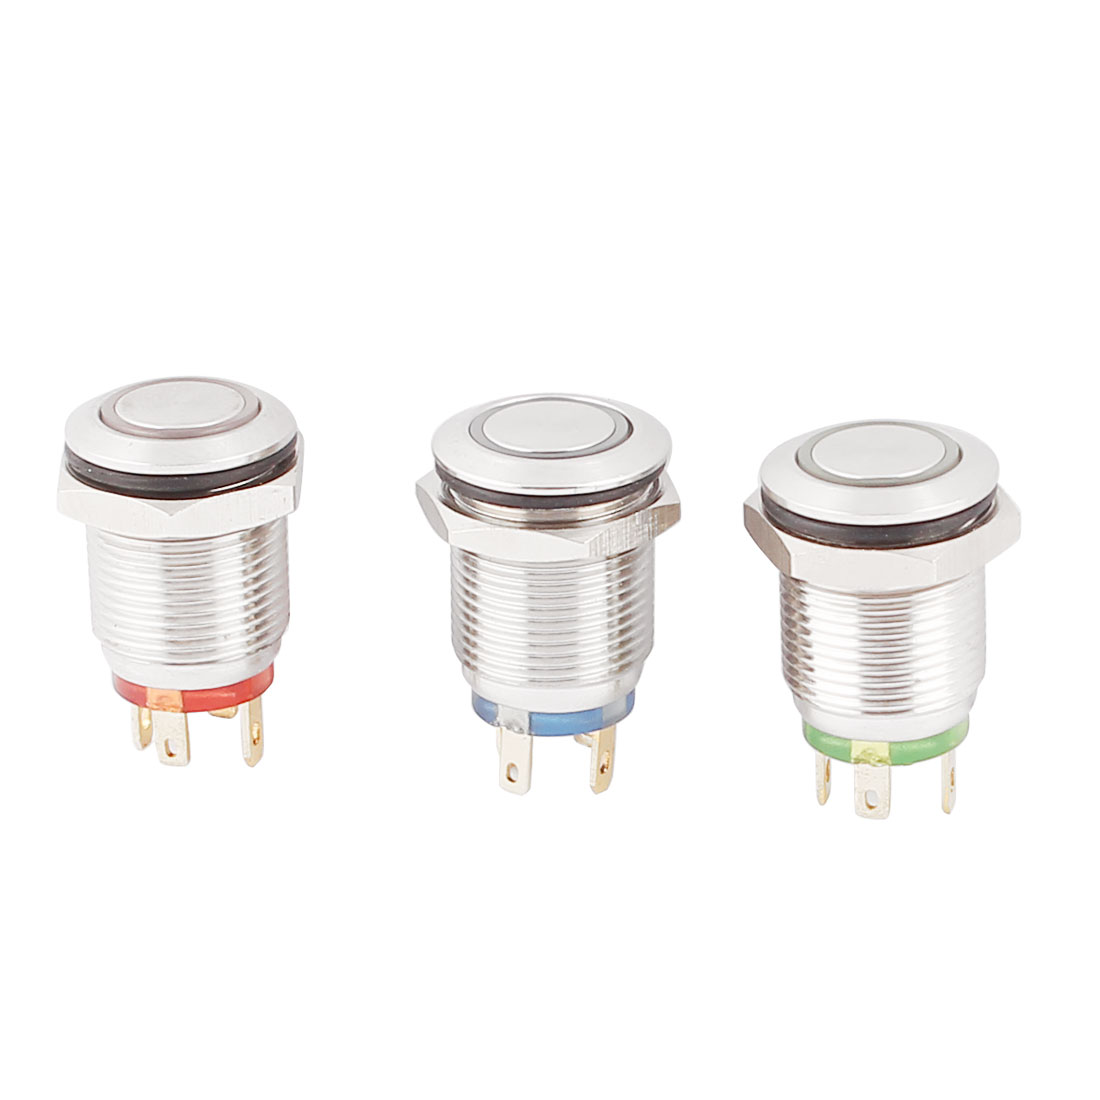 3Pcs Red Green Blue LED Light 12mm Flat Head Momentary Push Button Switch